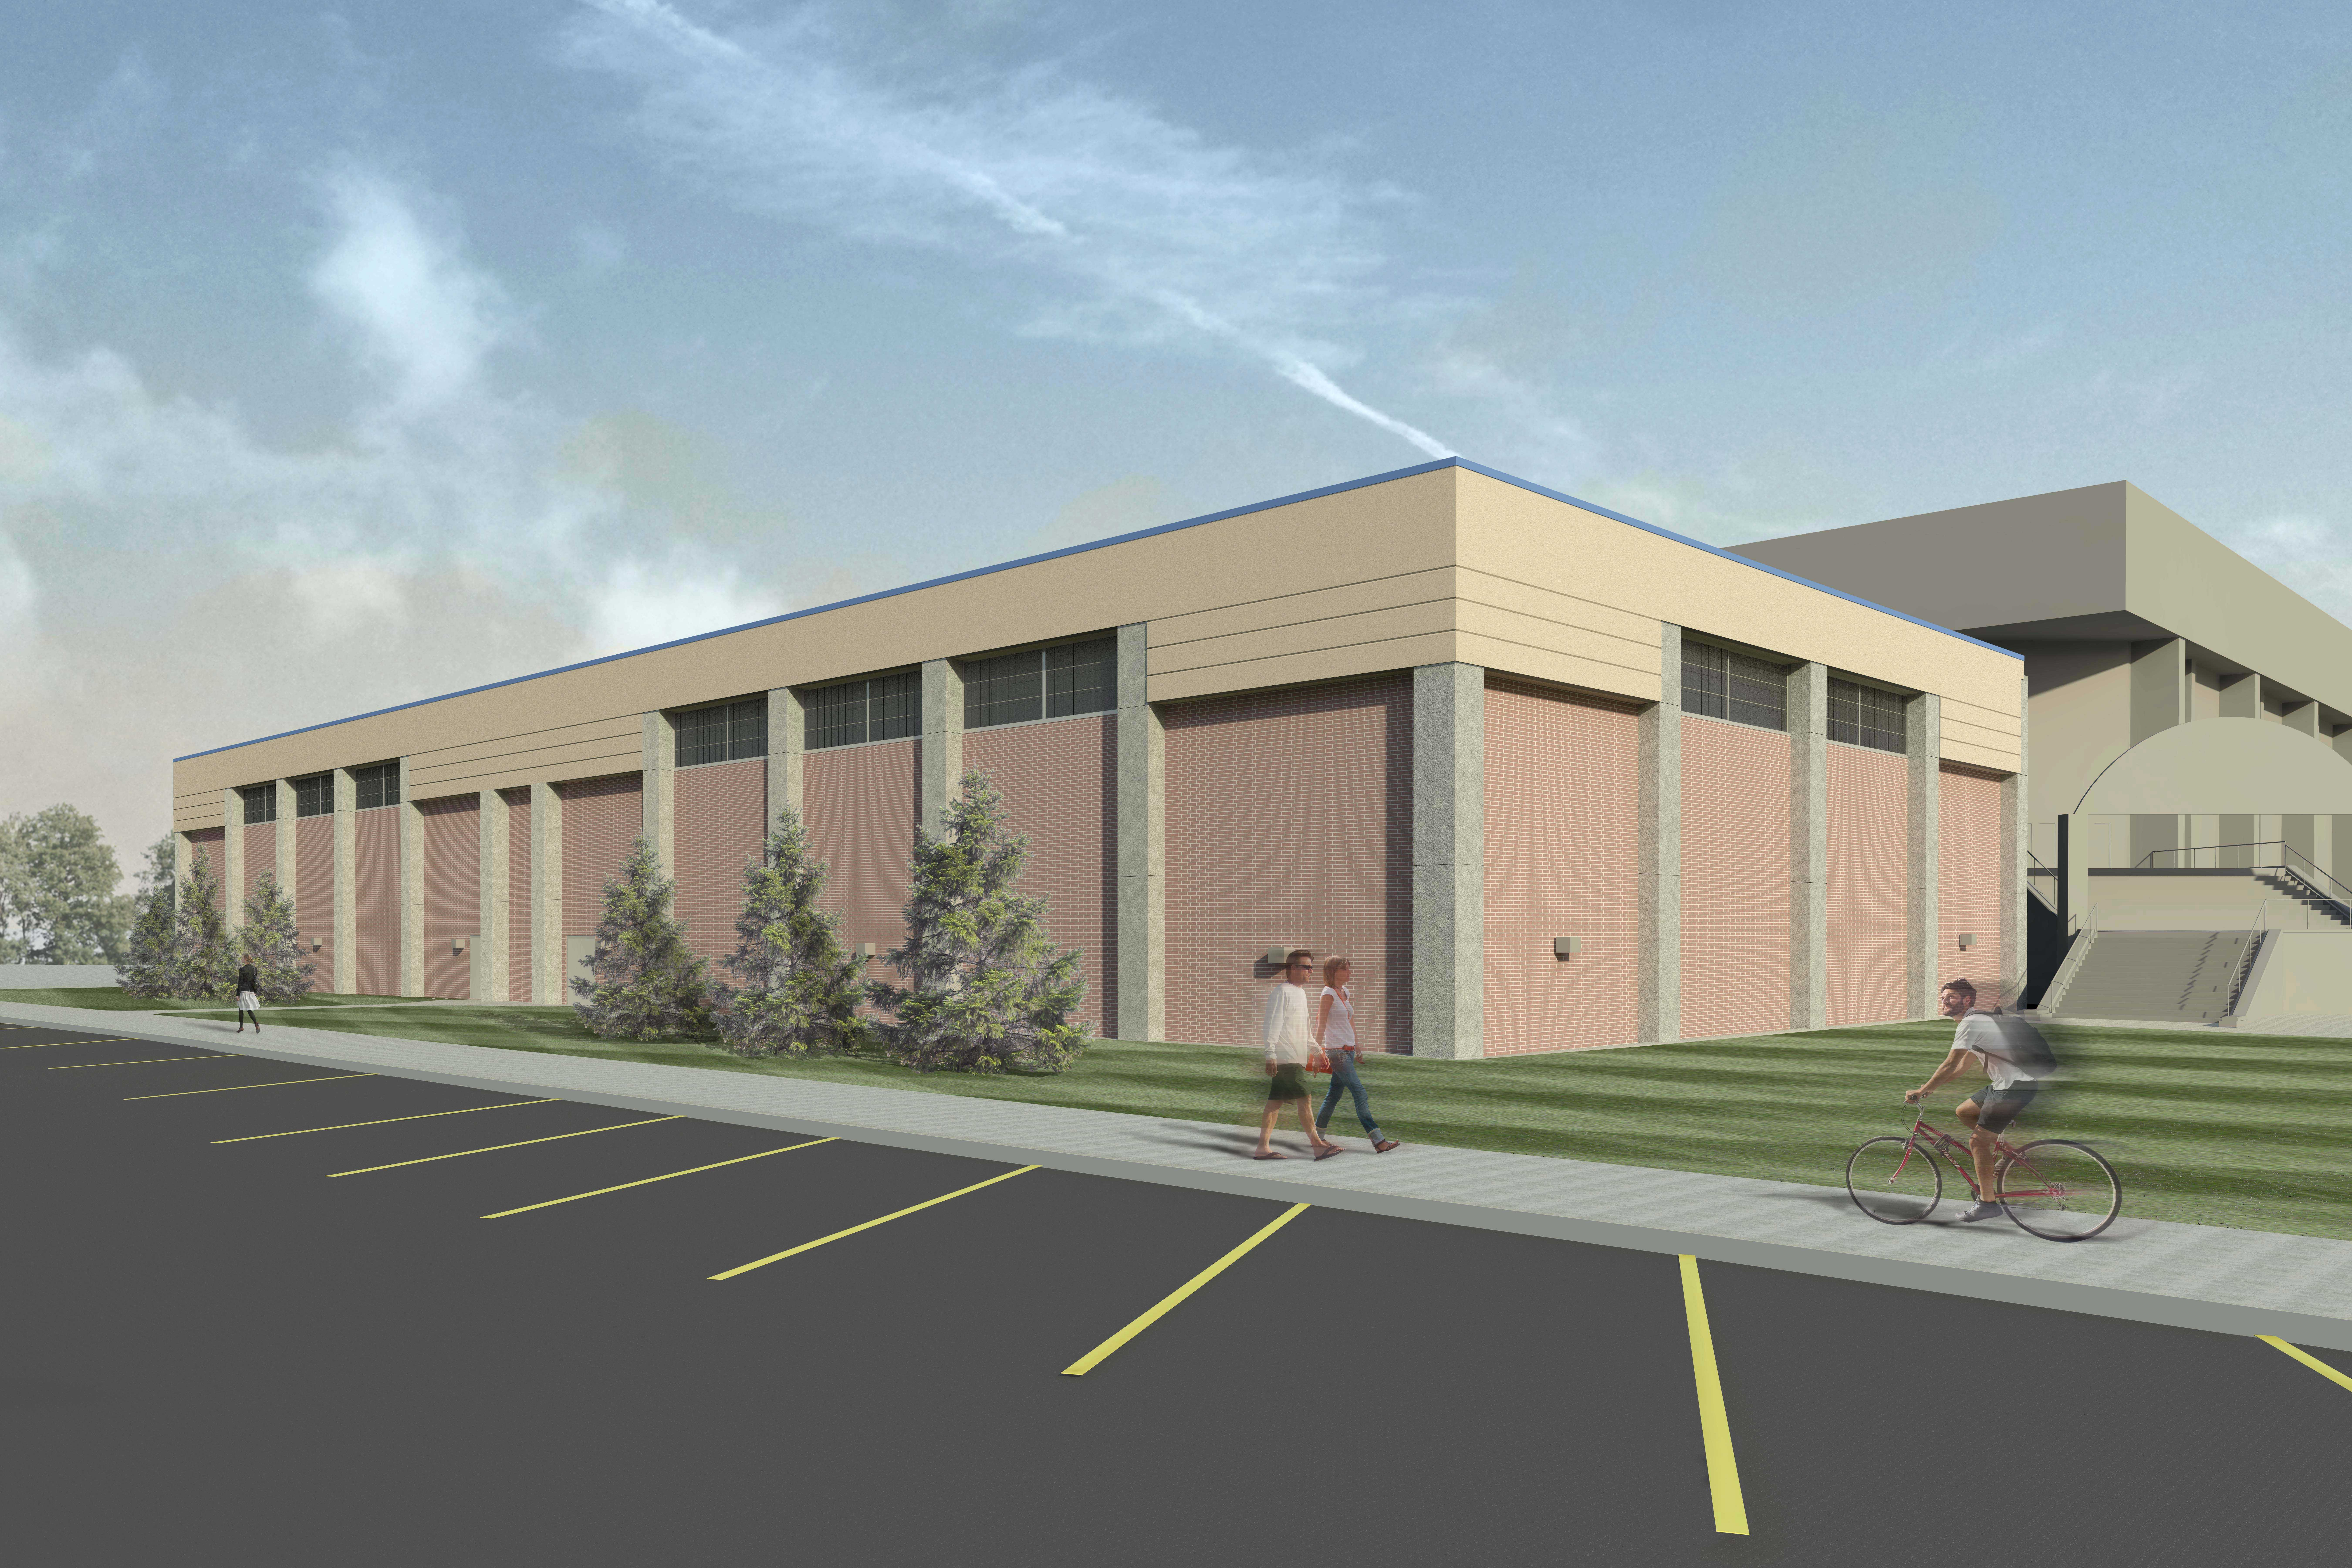 Construction begins on new practice facility